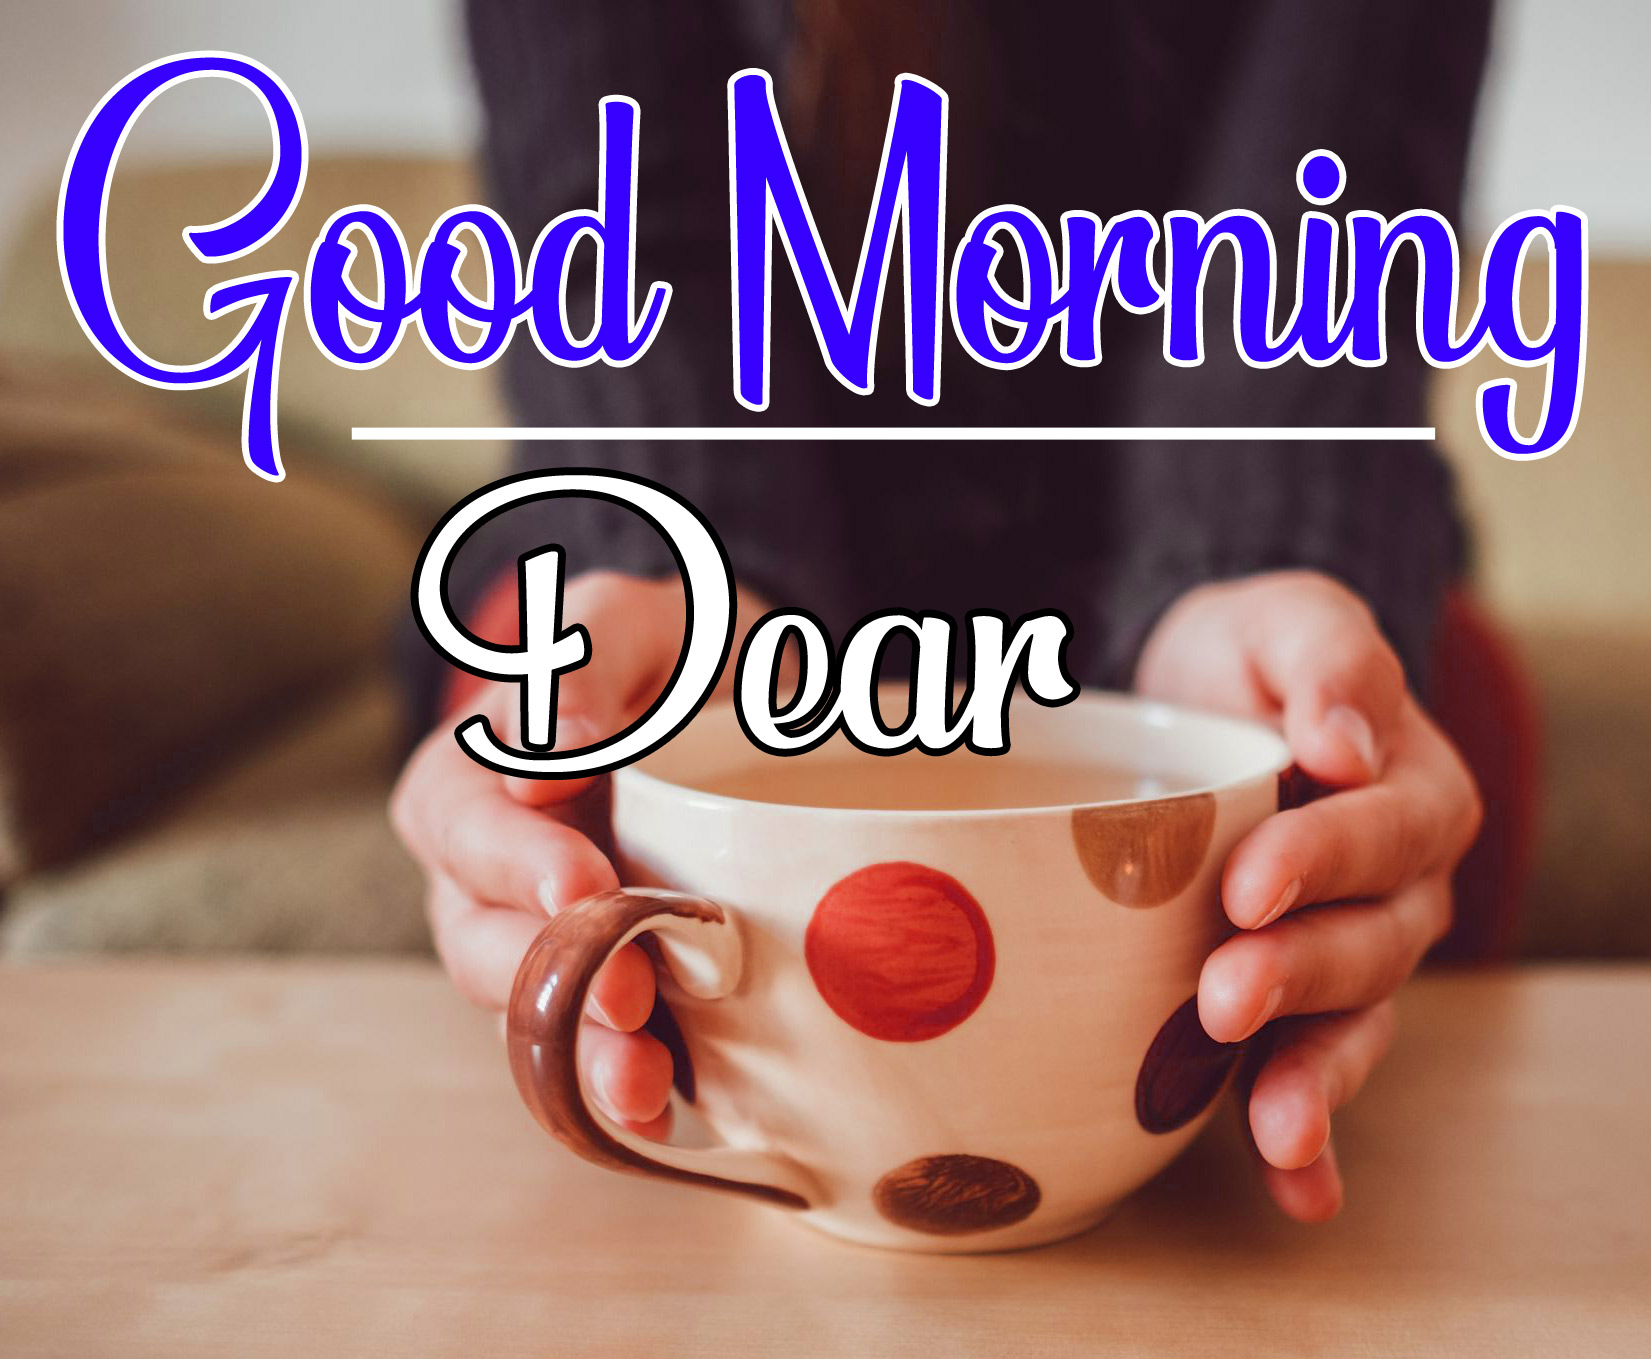 Good Morning Images pics photo free download